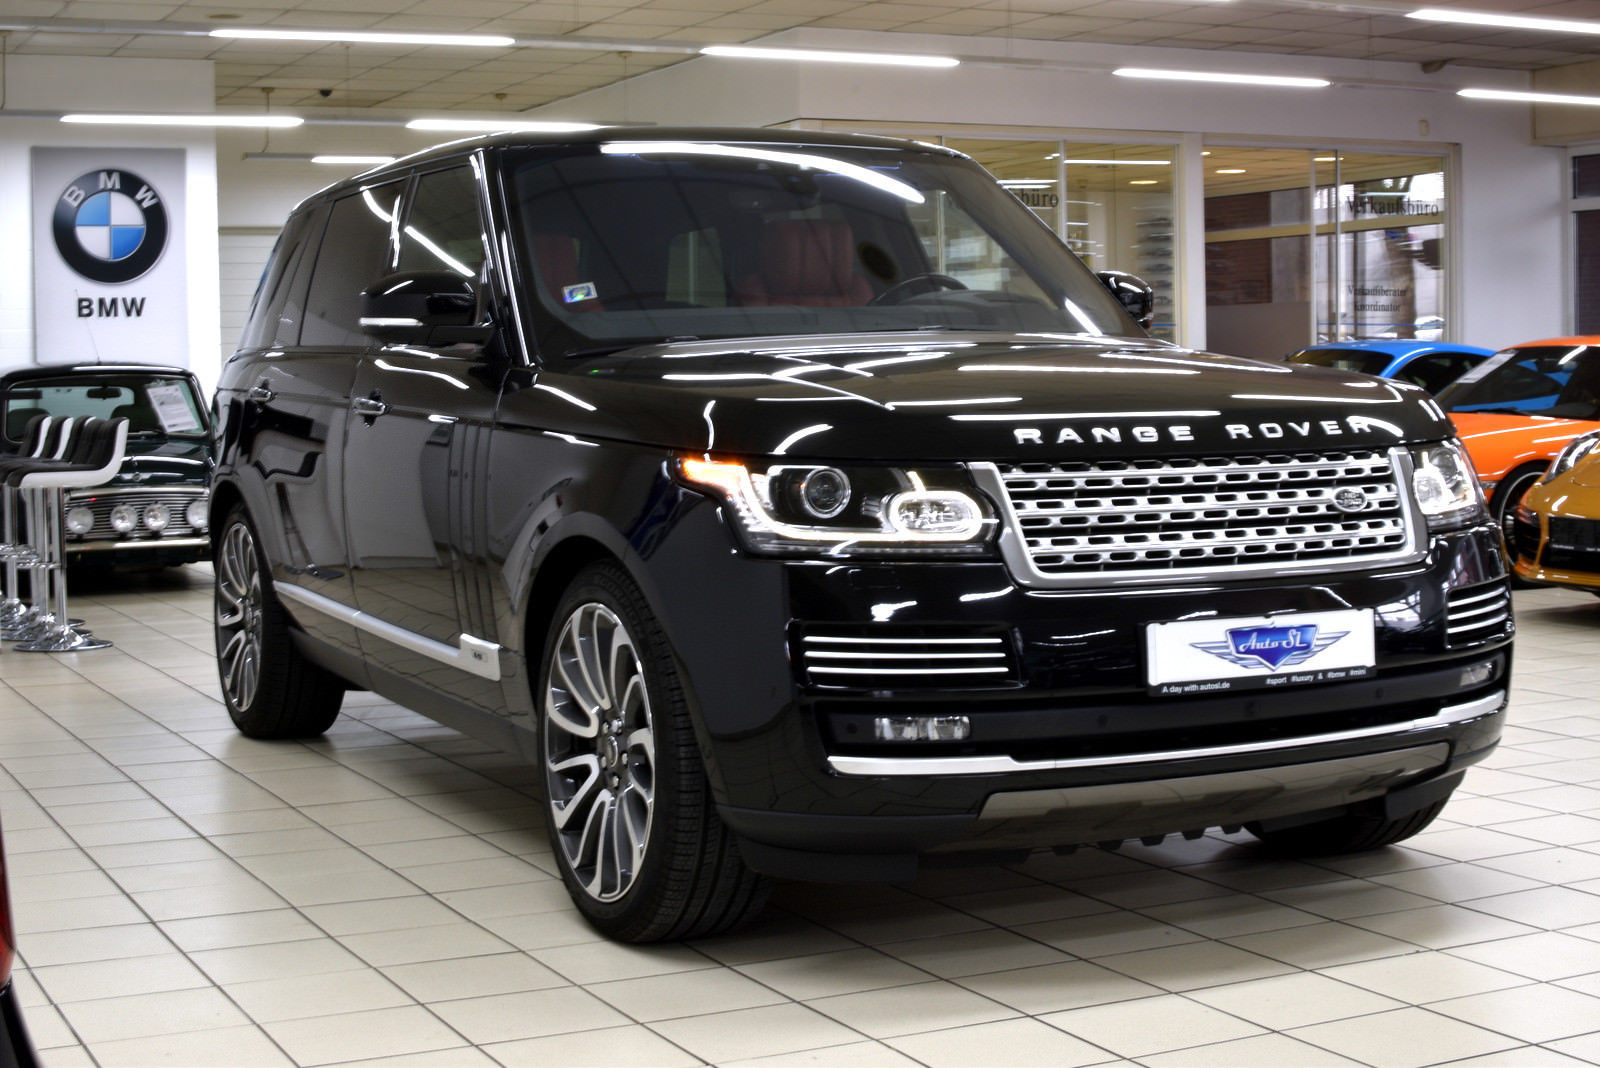 Land Rover Range Rover 5.0 Supercharged LWB Autobiography